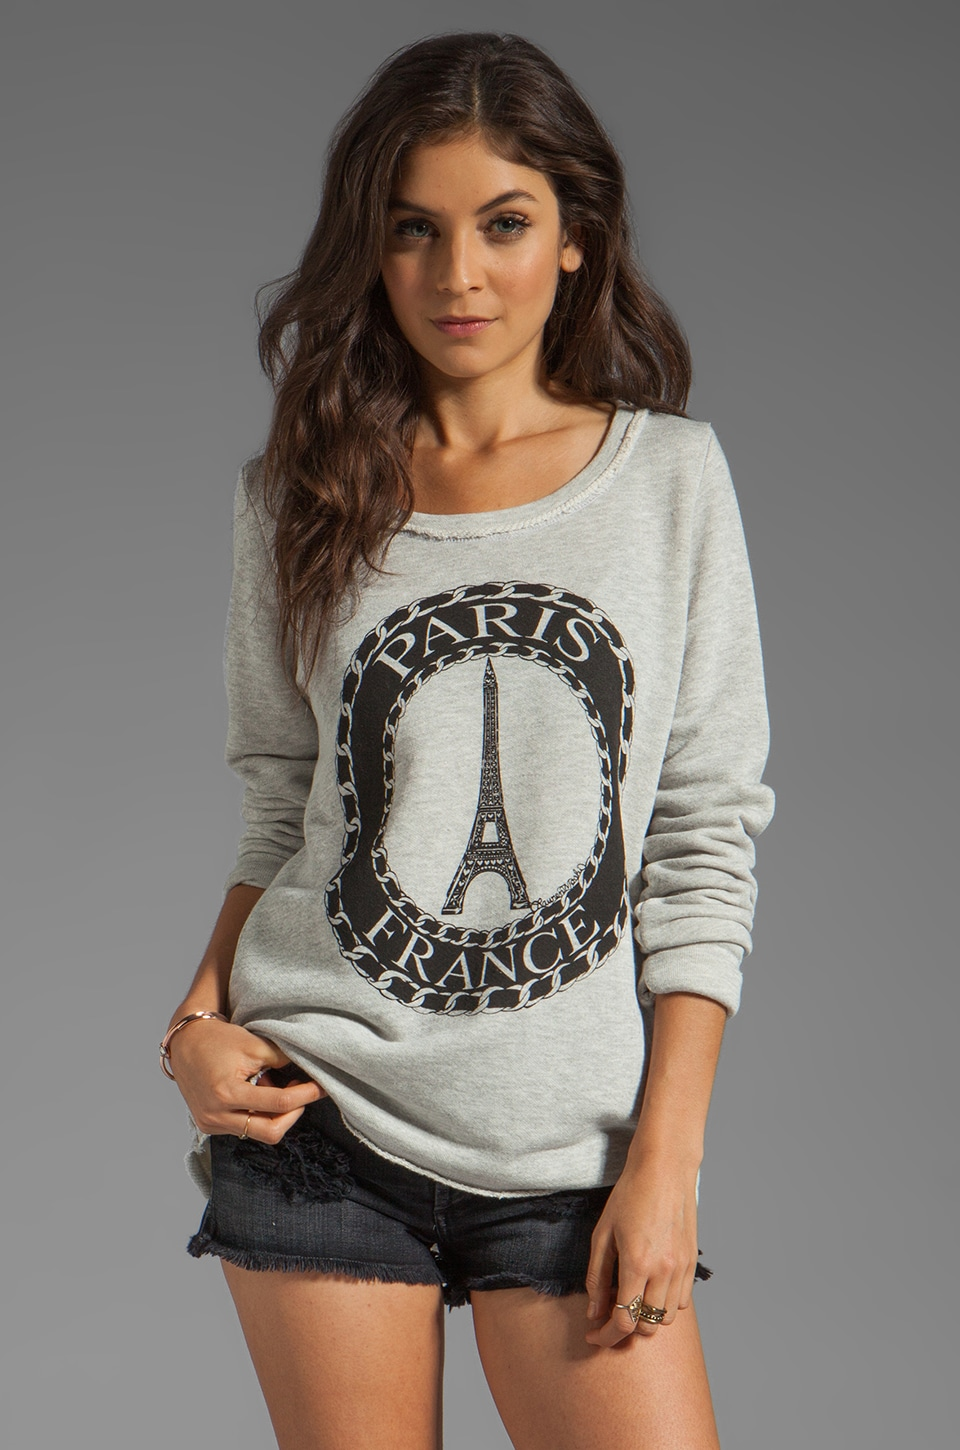 Lauren Moshi Kallie Paris Thumb Hole Sweatshirt in Heather Grey